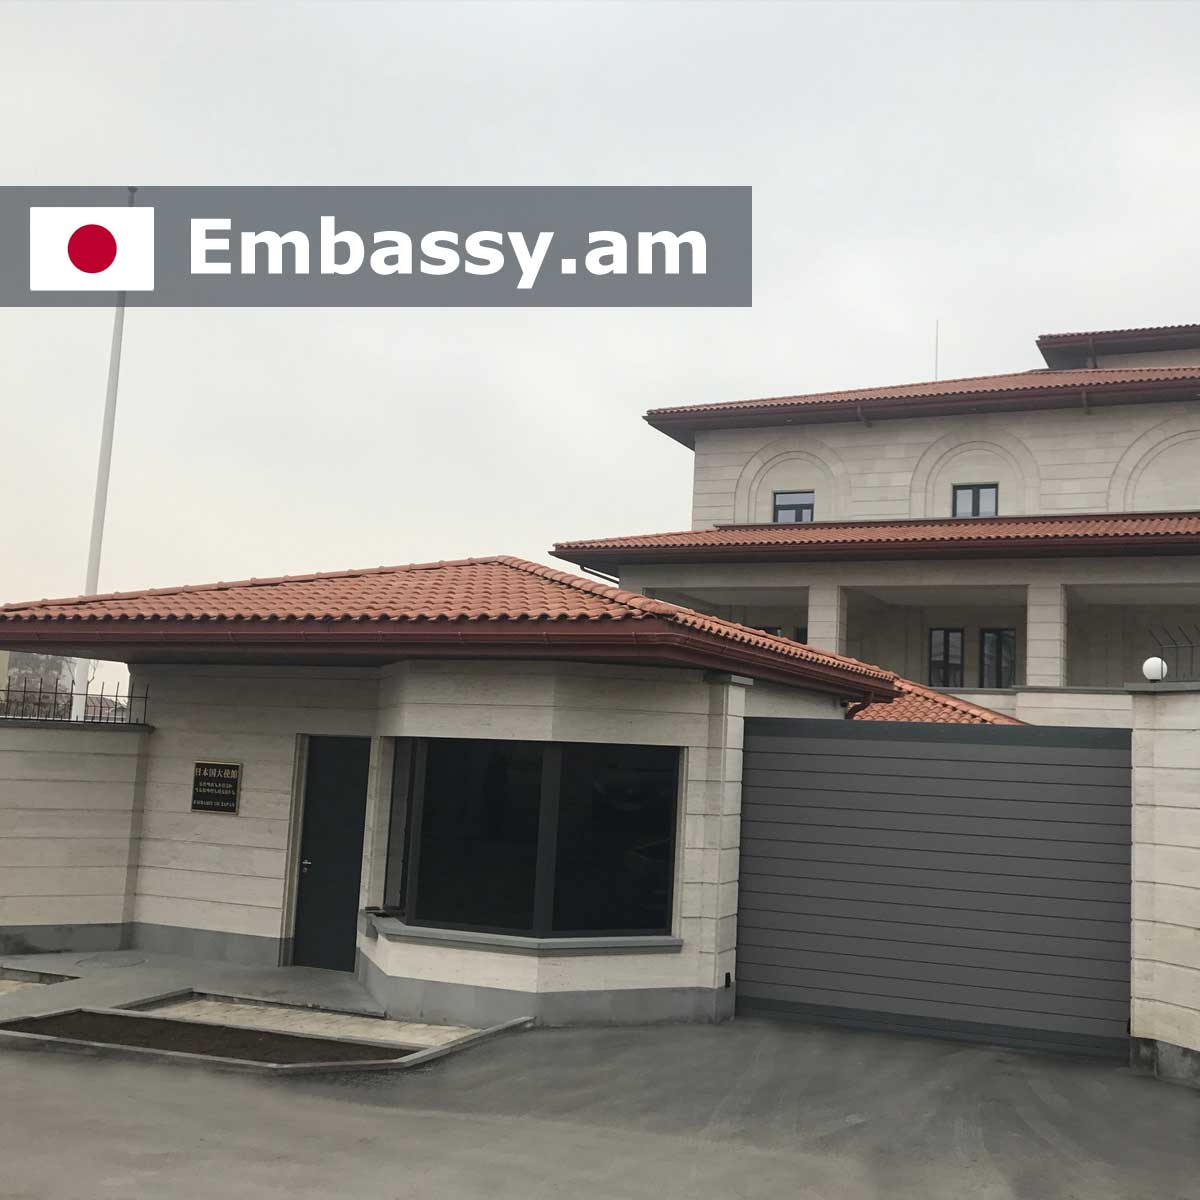 Embassy of Japan in Armenia: www.embassy.am